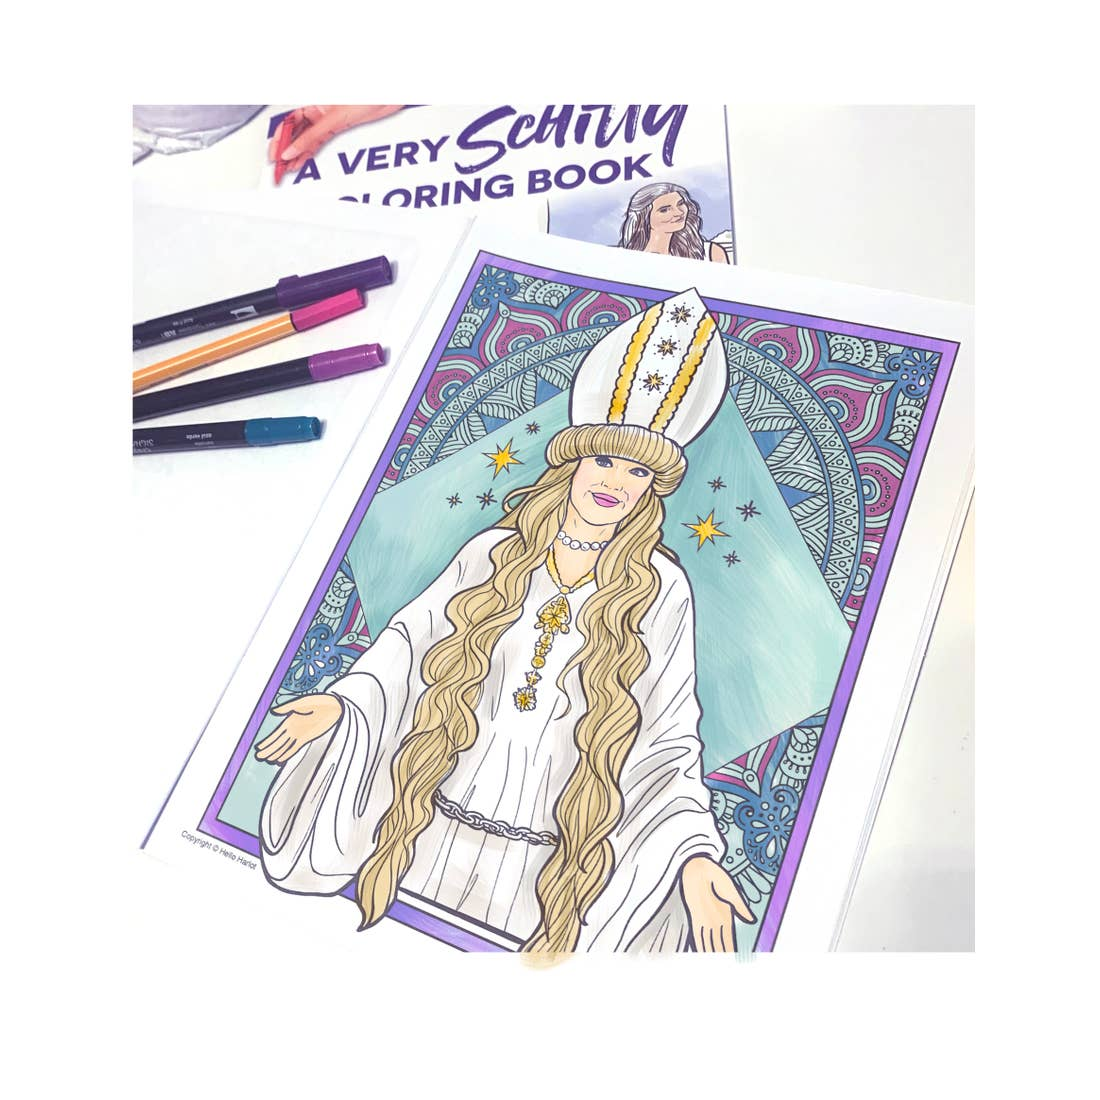 Example page of A Very Schitty Coloring Book